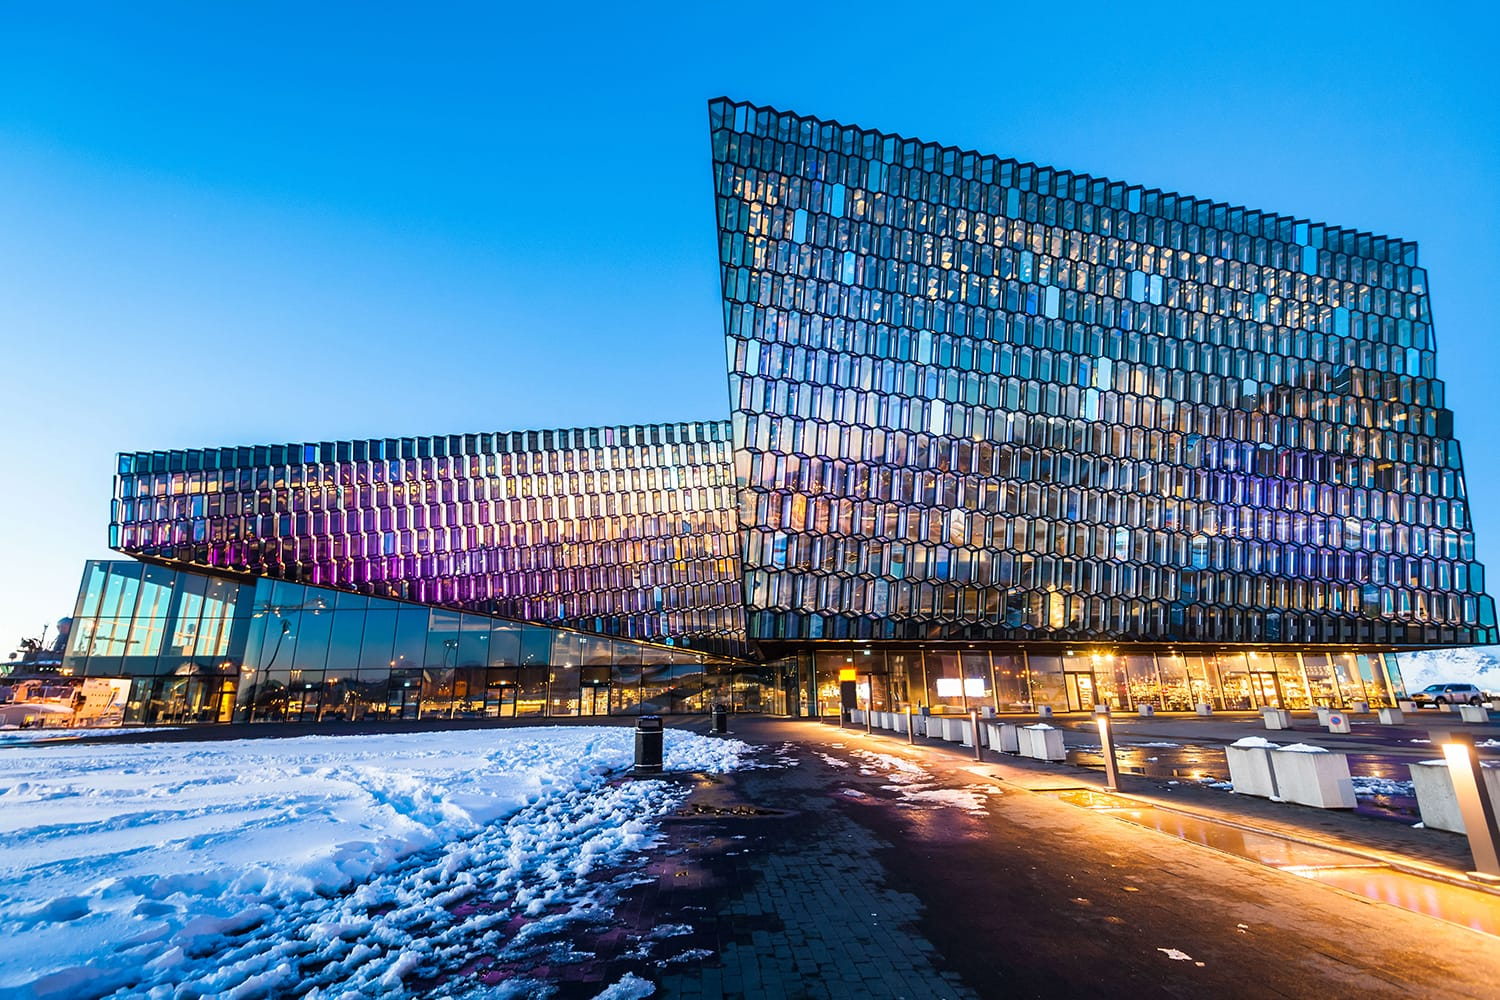 Harpa Concert Hall view during blue hour in Reykjavík, Iceland